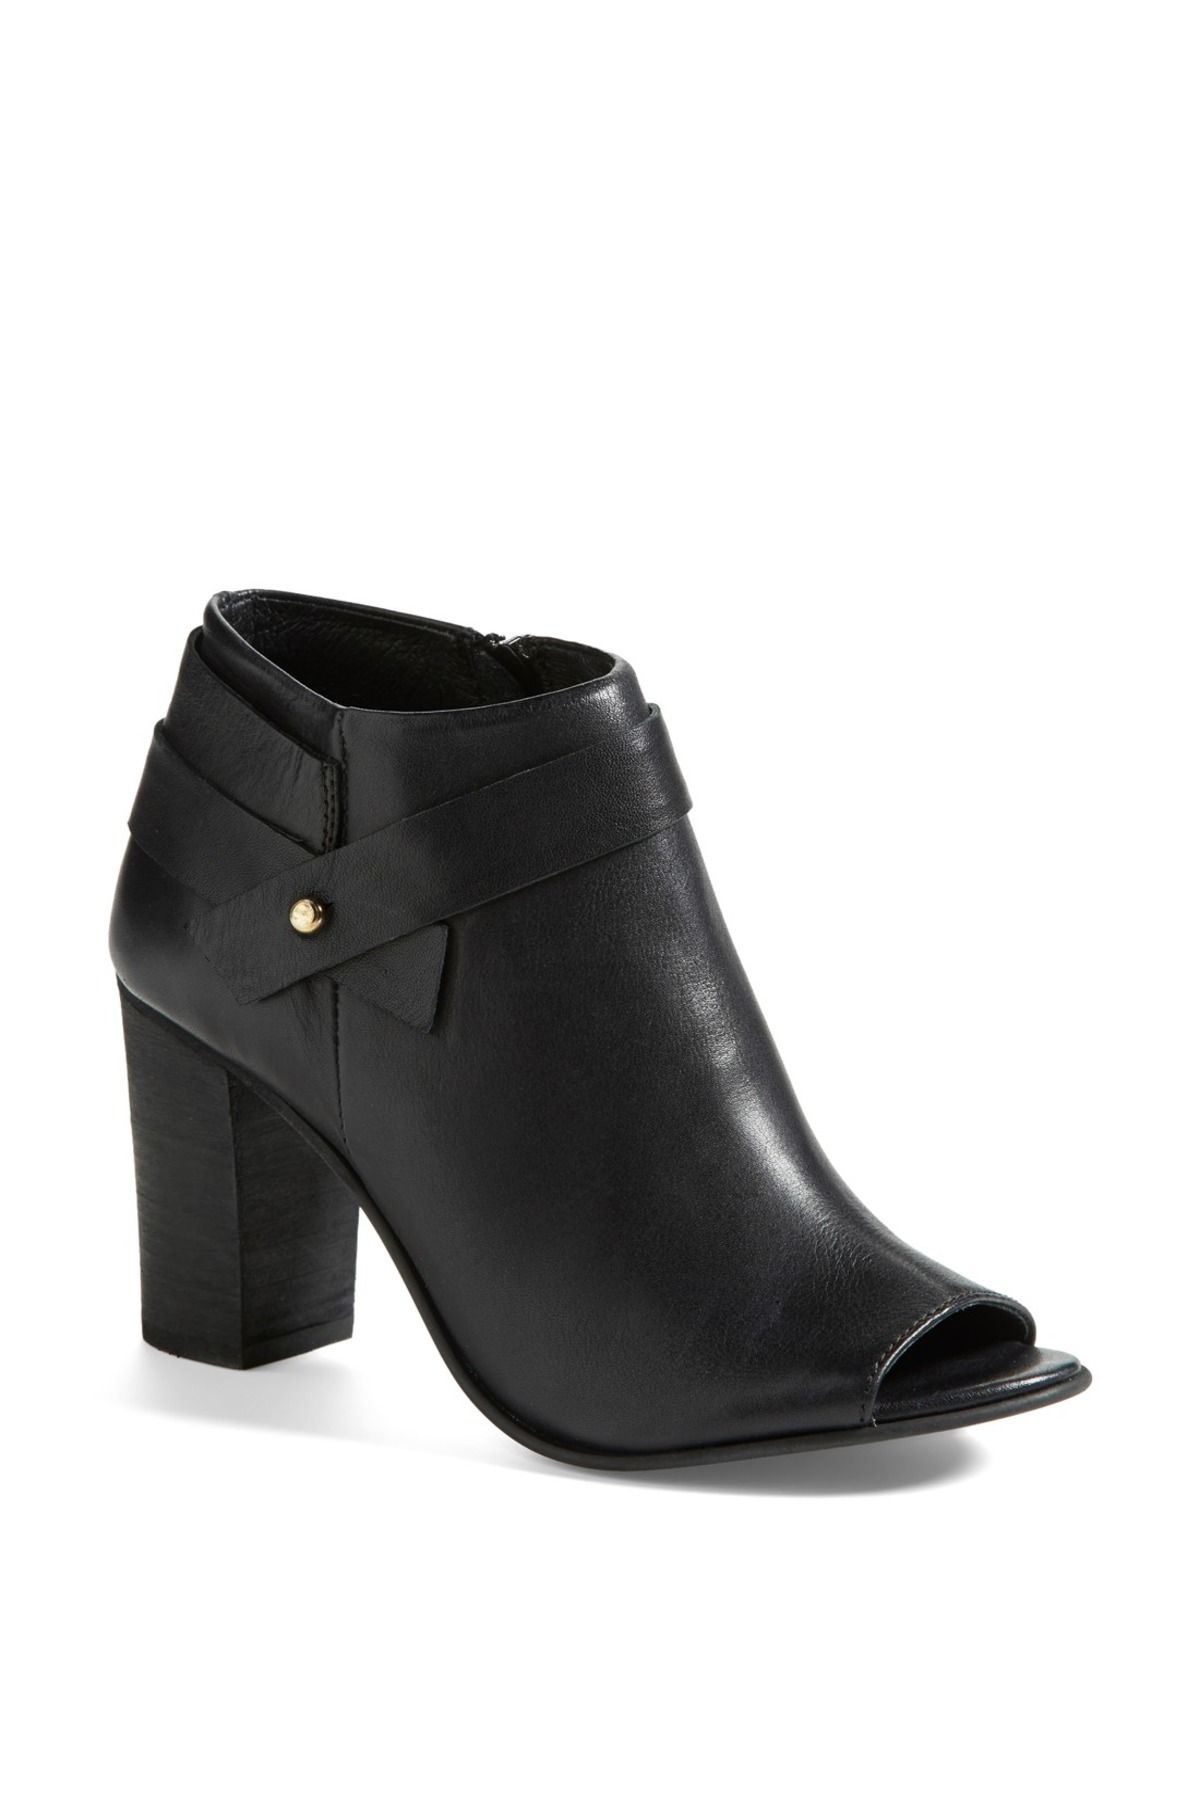 Another option for office footwear: Steve Madden 'Now' Open Toe Bootie (Women) by Steve Madden on @nordstrom_rack